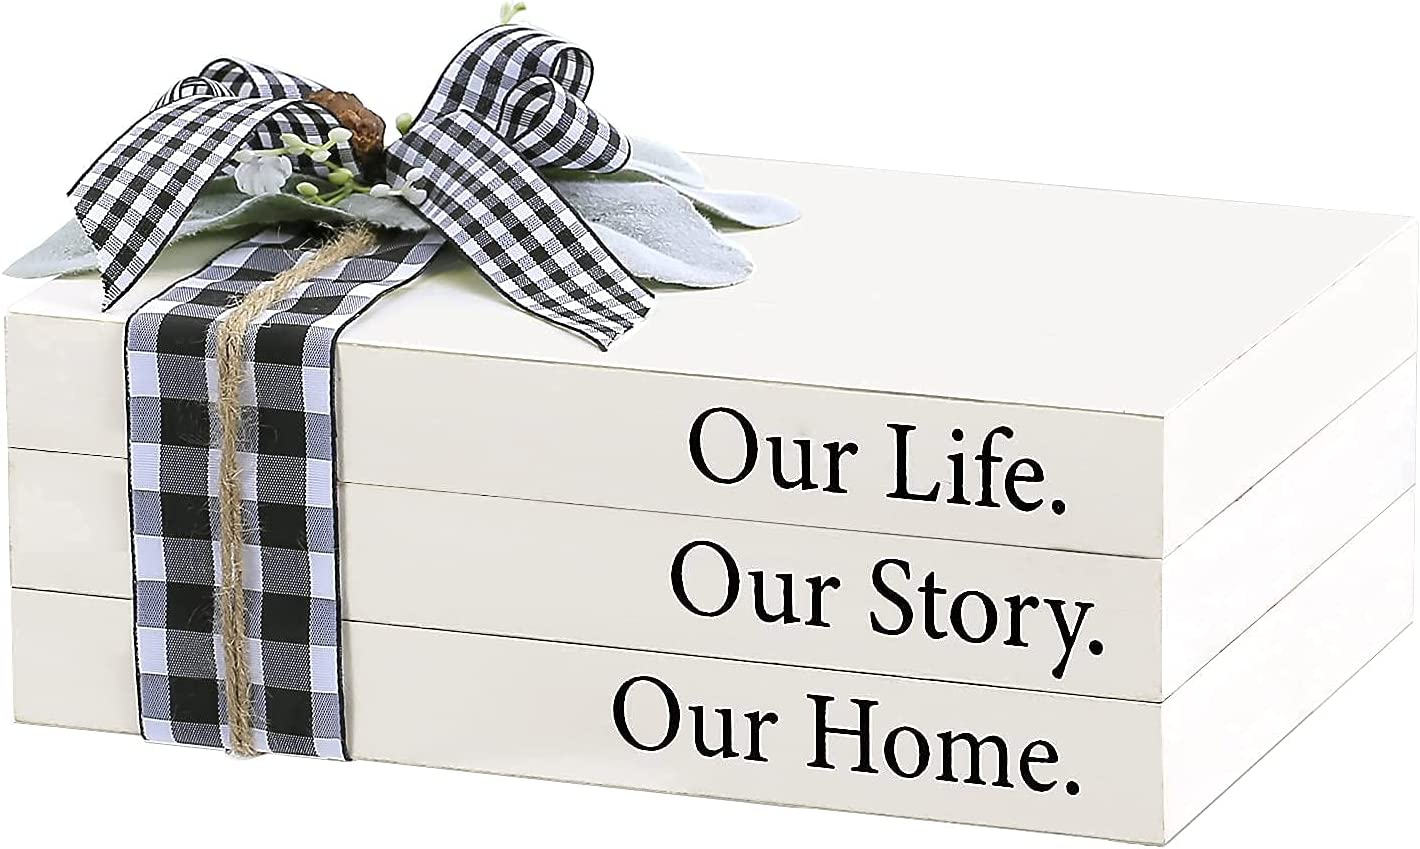 Airrioal Farmhouse Stacked Book Decor,Wooden Decorative White Books-Our Life Our Story Our Home Modern Farmhouse Coffee Table Decor,Bookshelf Tiered Trays Decorations for Living Room Home,Set of 3